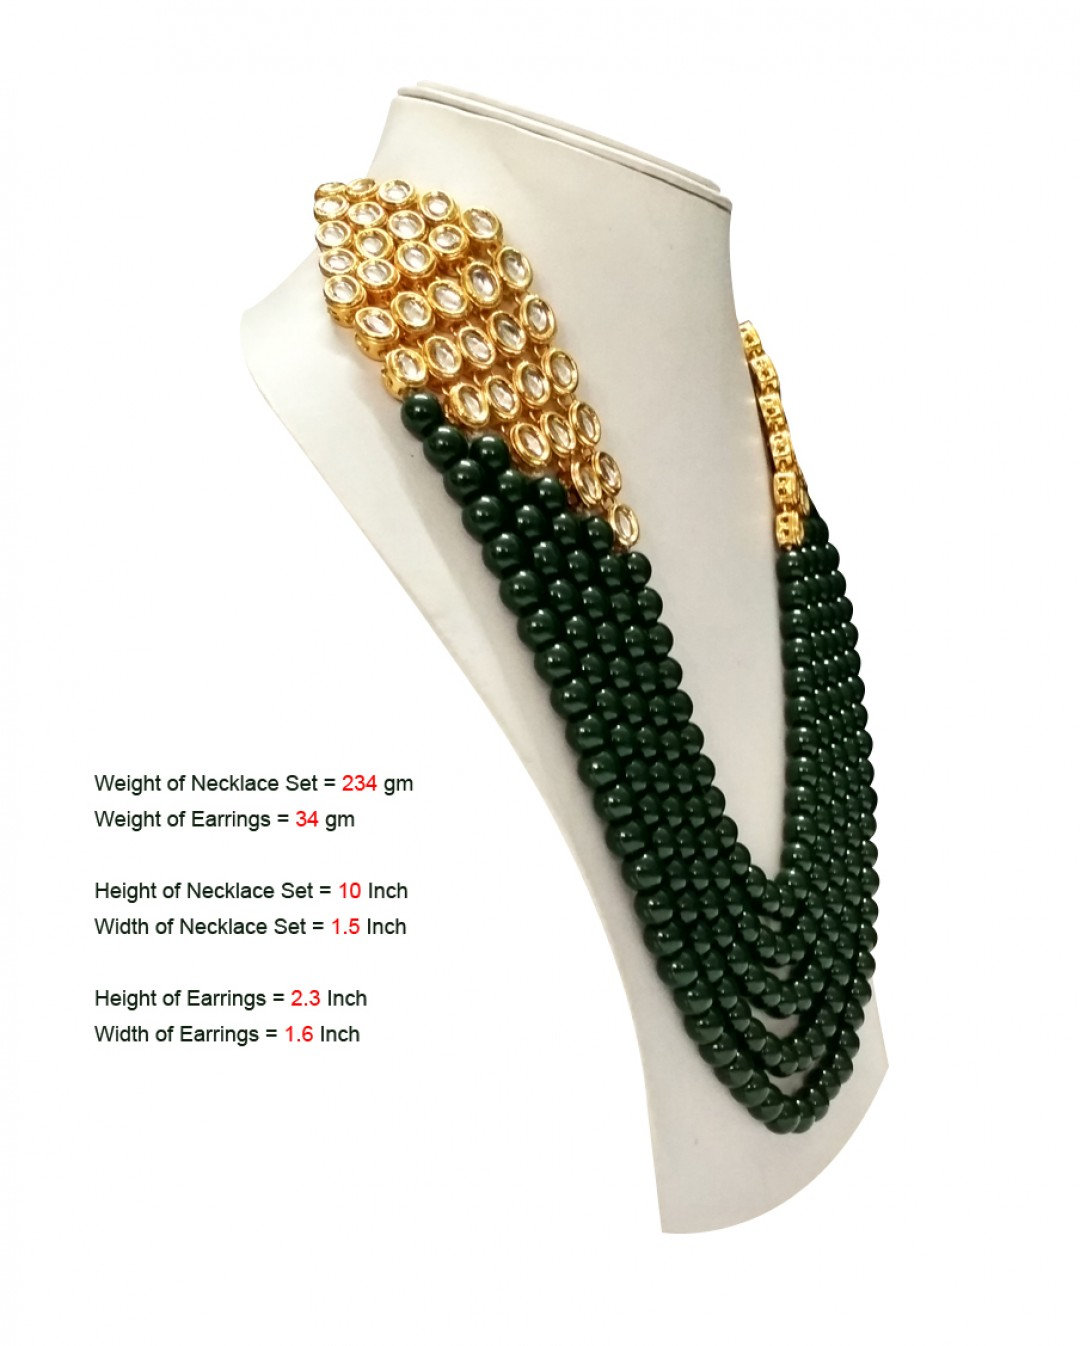 HM Necklace Set Kundan Stone Green Beads Mulri Chain For Woman & Girls